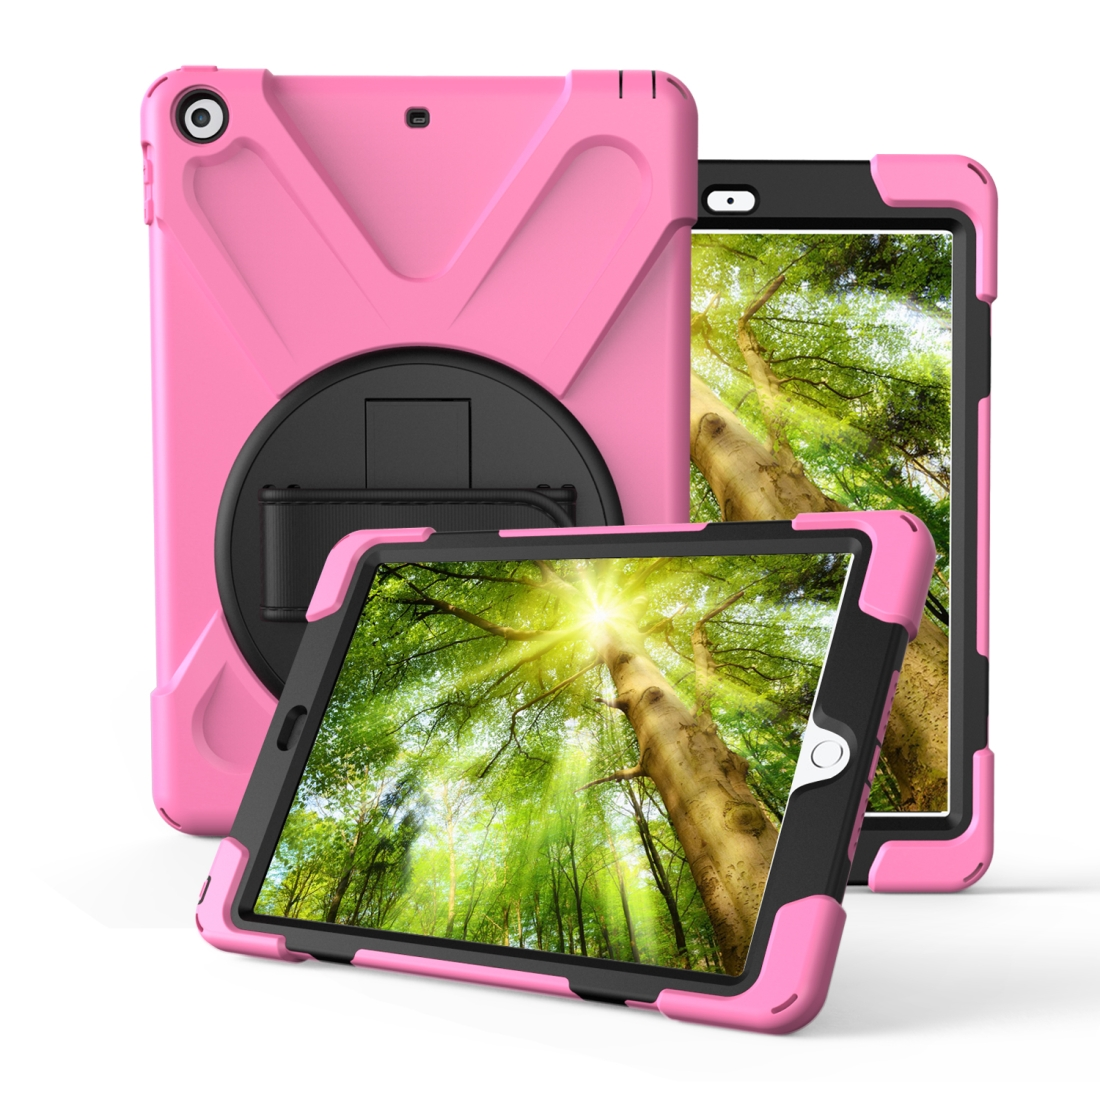 iPad 7th Generation Case (10.2 Inch) With A Protective Rotatable Design And Hand Strap (Pink)